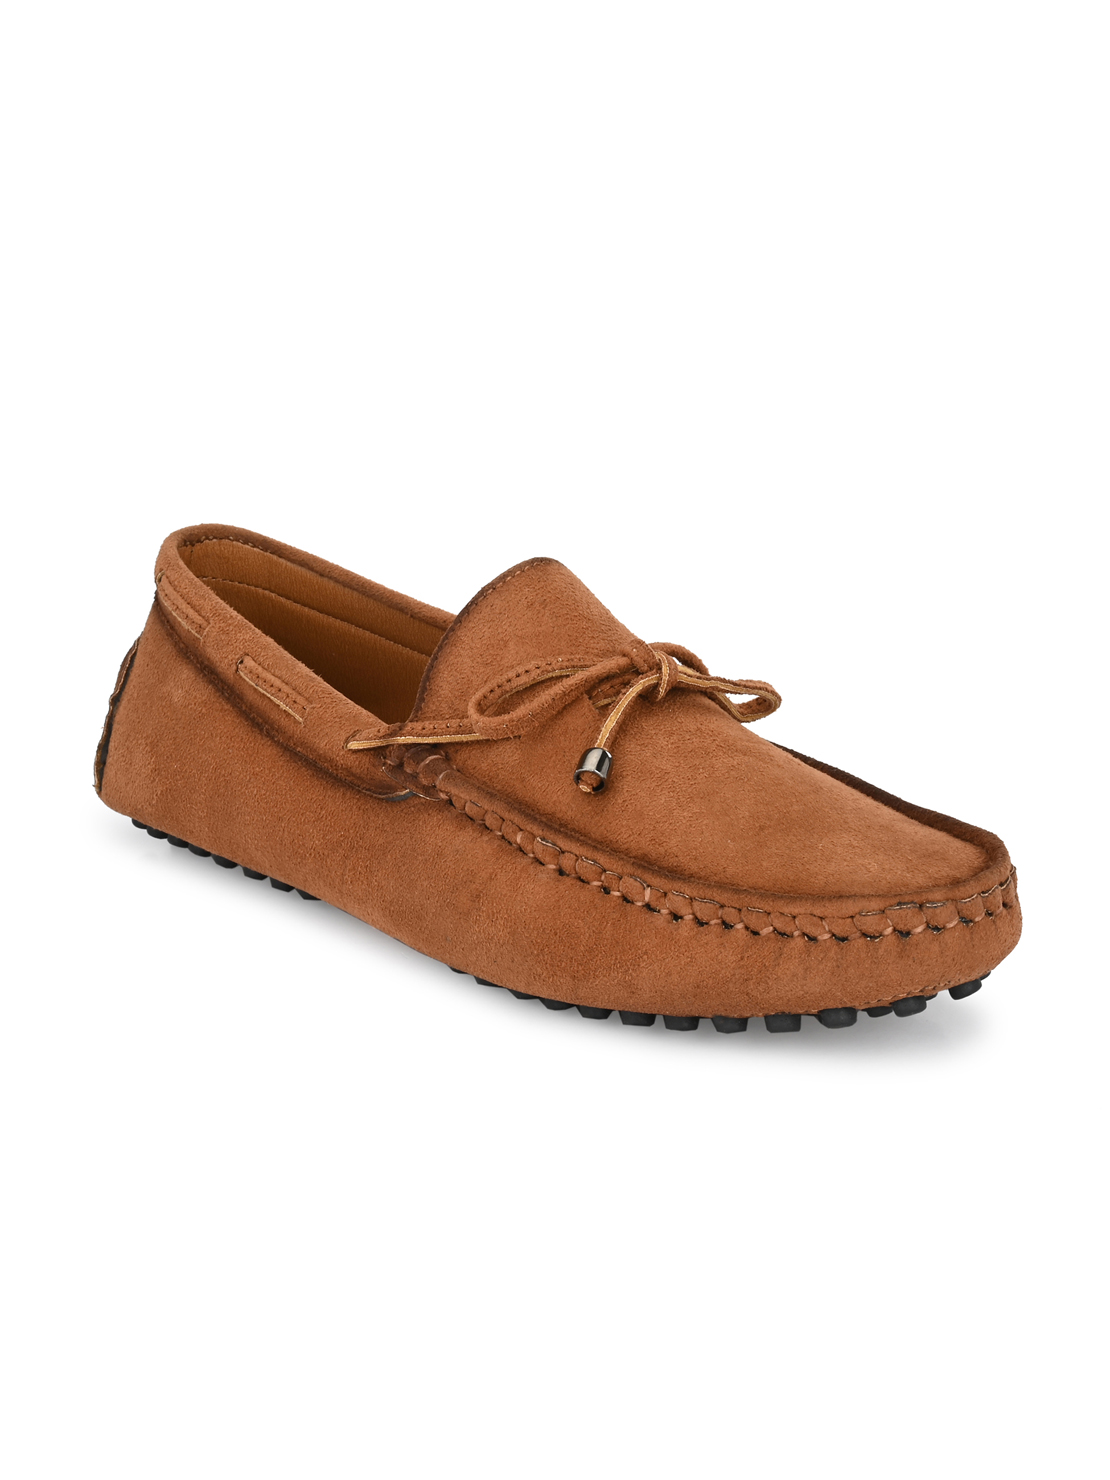 Guava | Guava Men's Driving Loafers Shoes - Tan